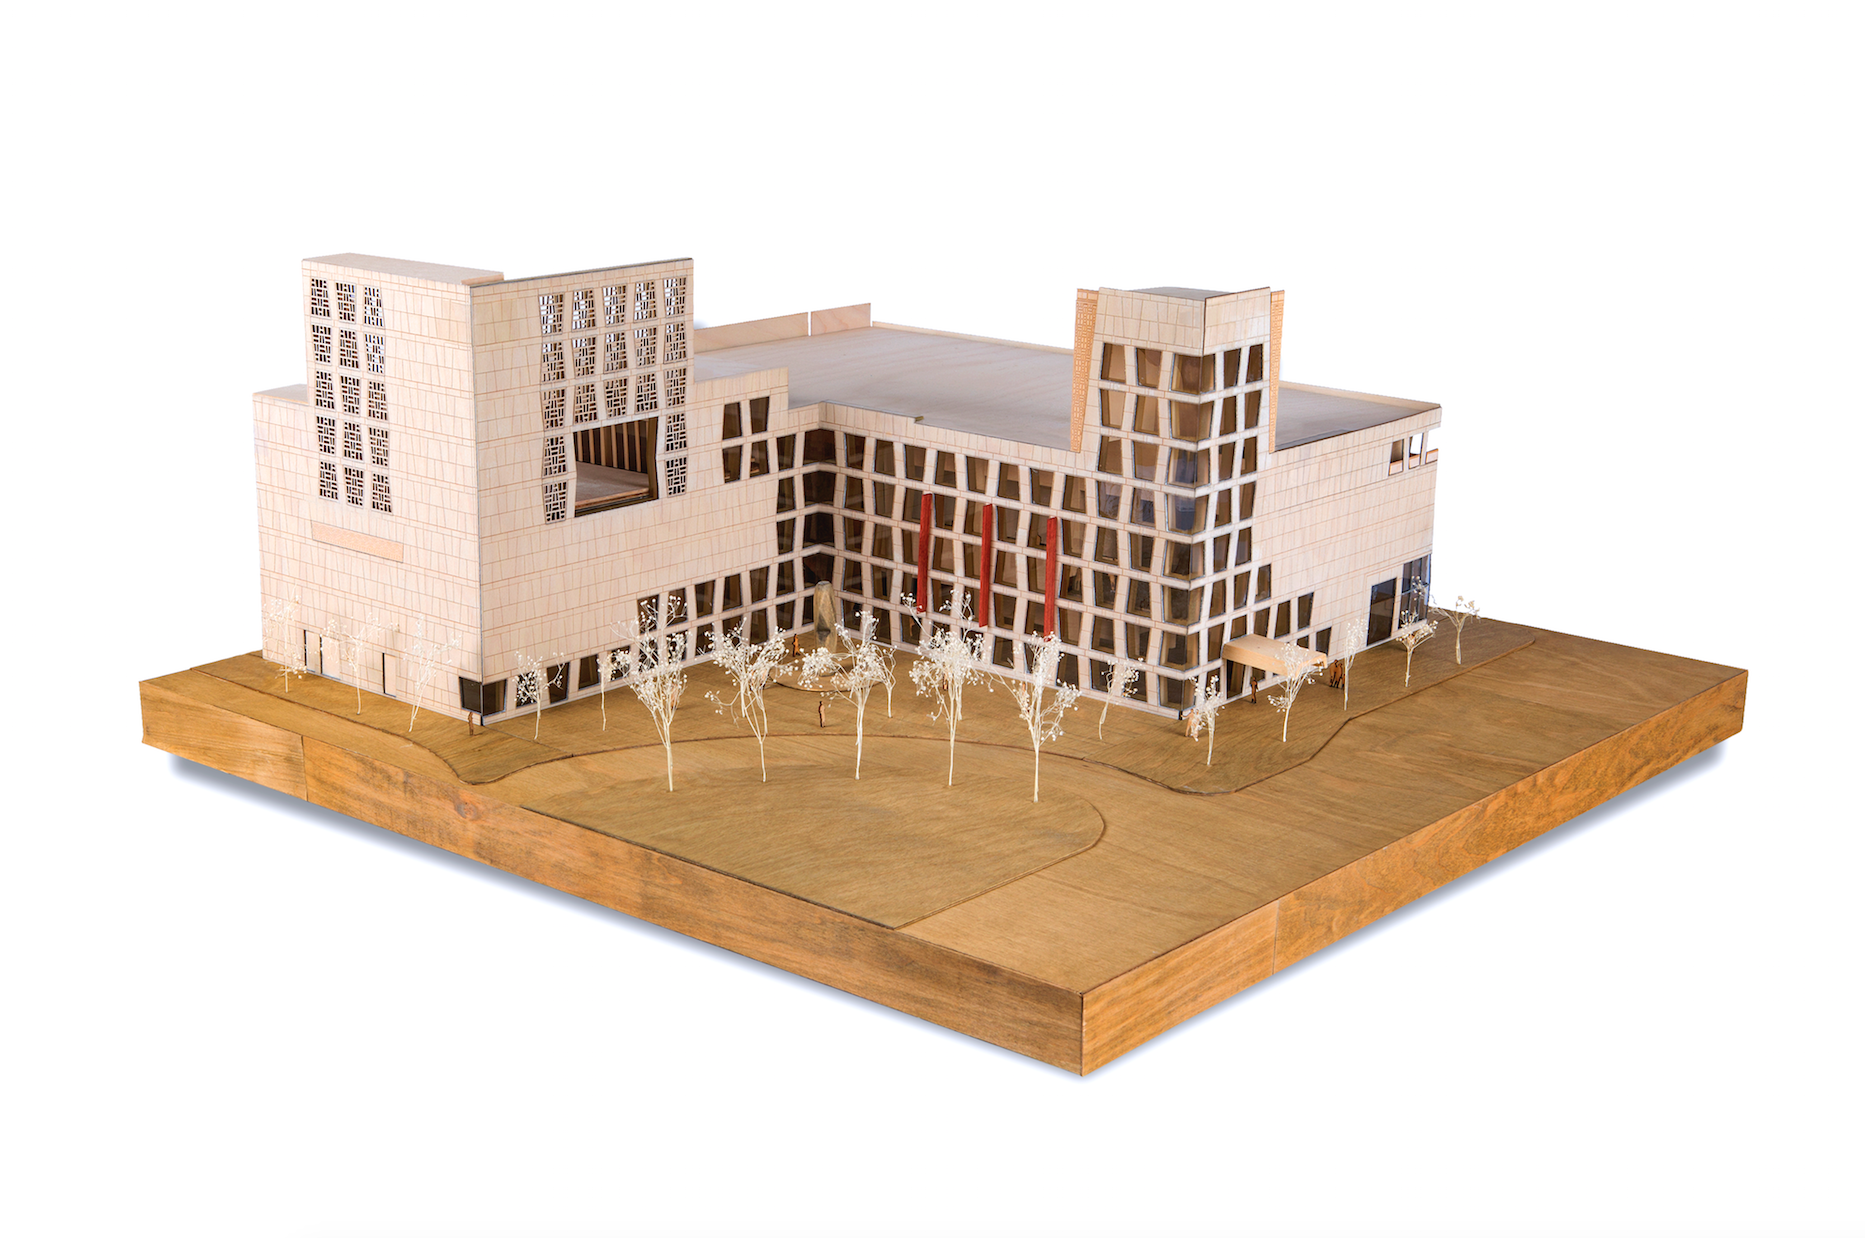 Architectural model of the Africa Center